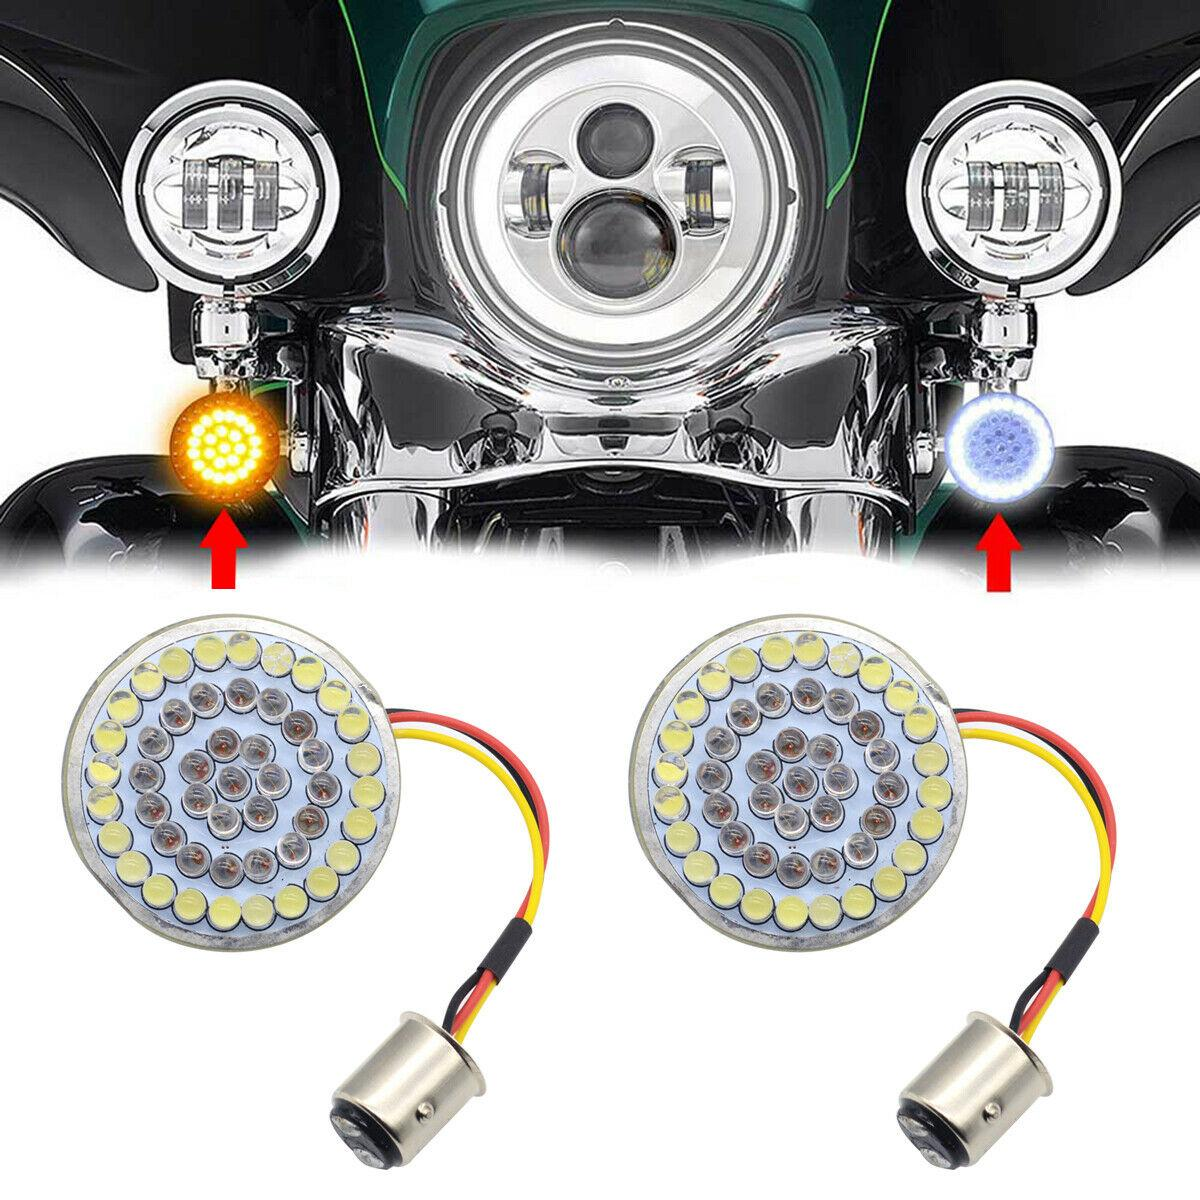 Feu clignotant LED 2 ''style balle 1157 ambre/blanc pour Harley Road King 1986 – 2018